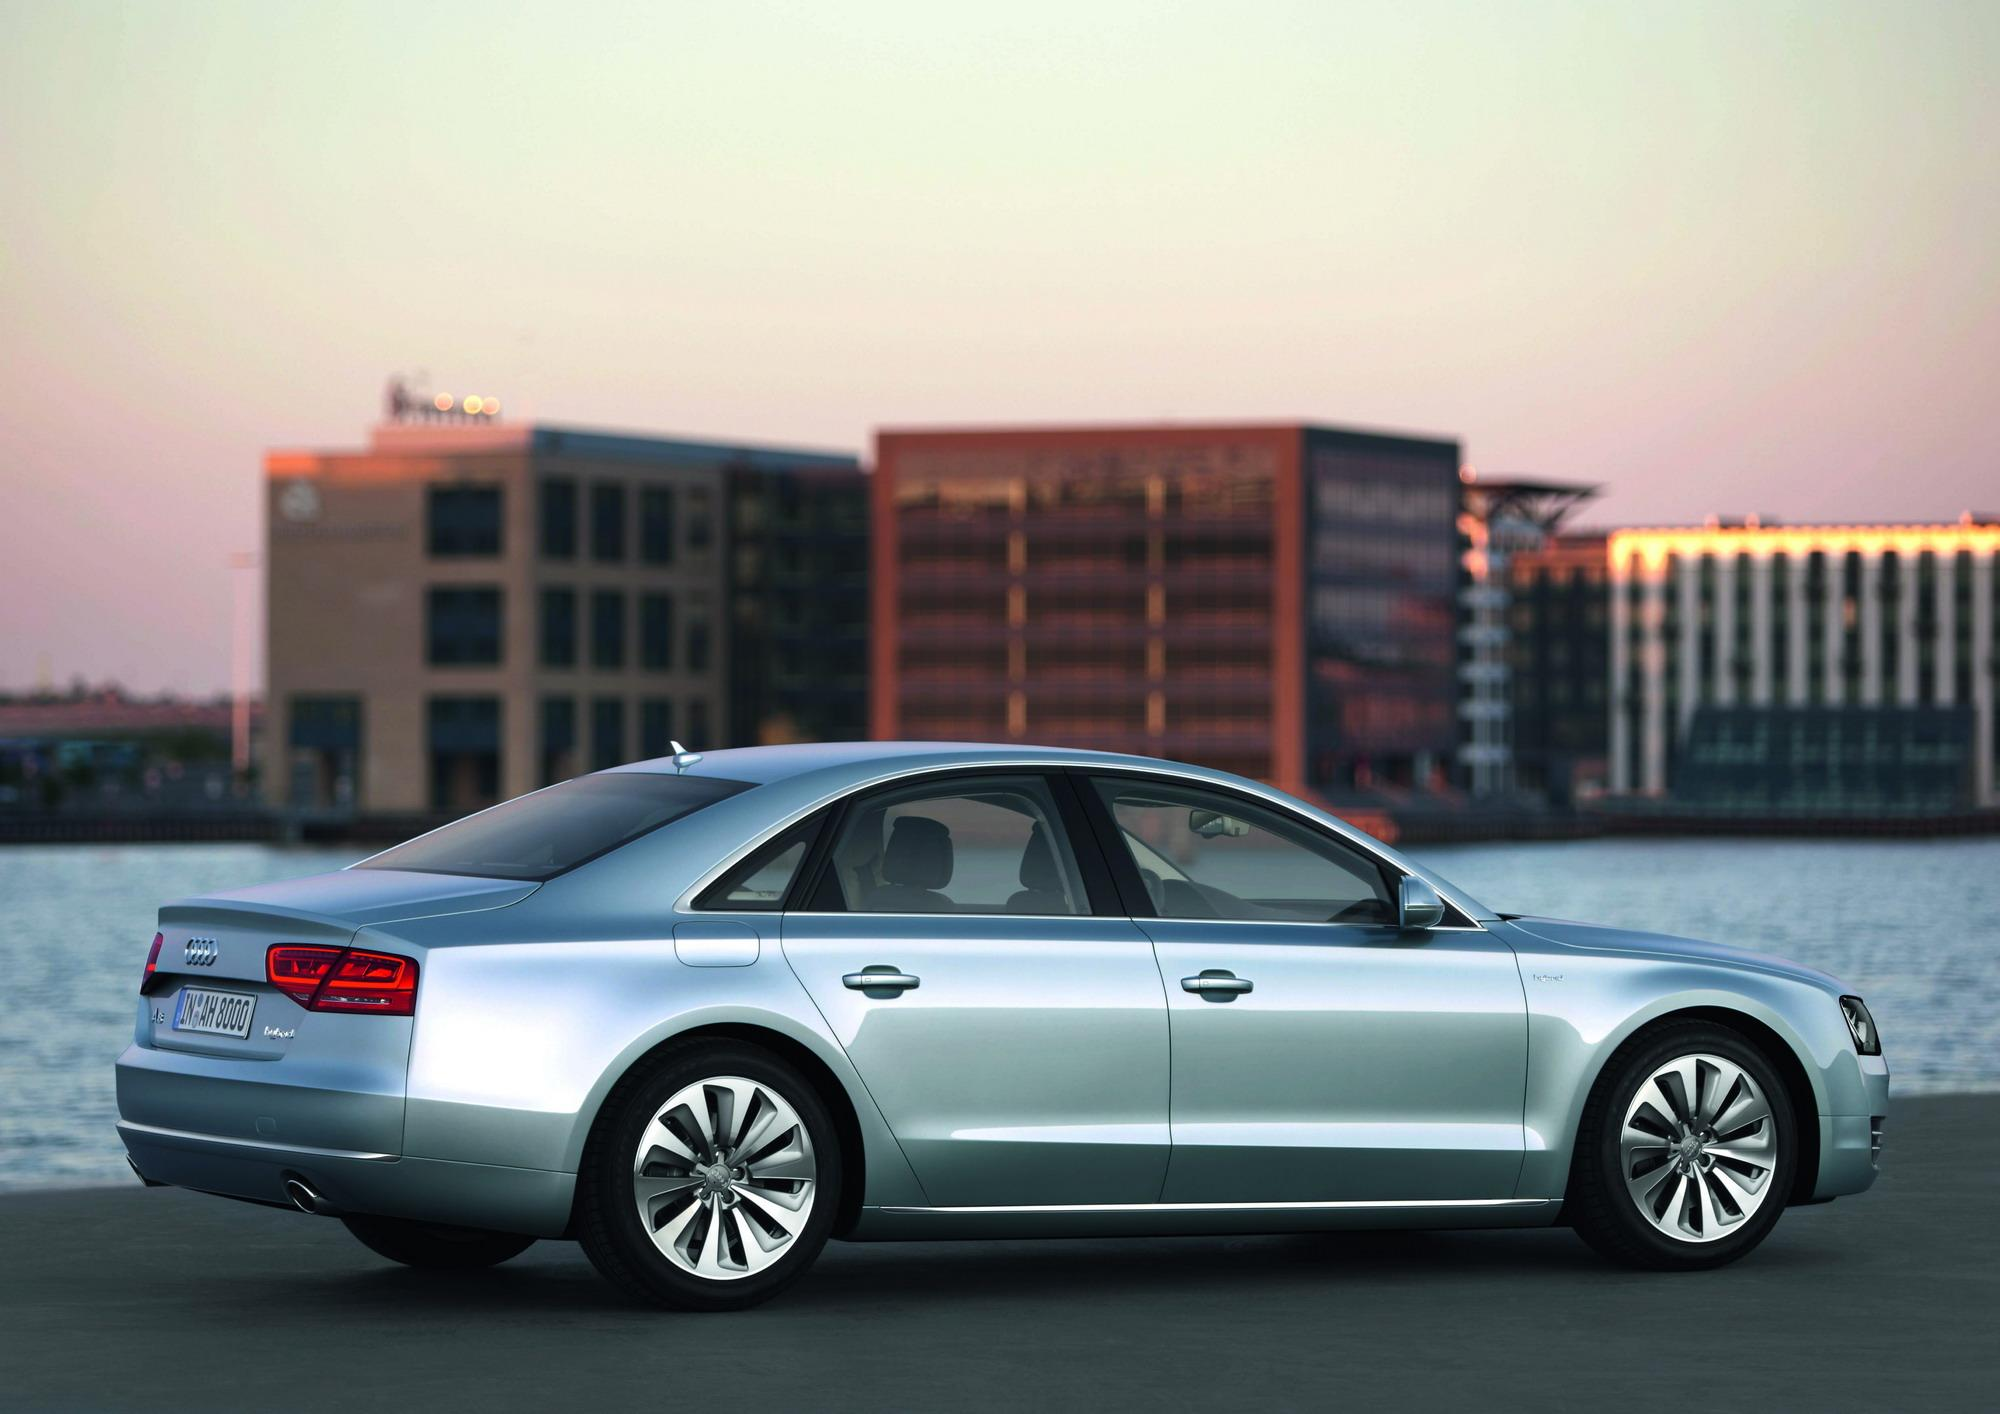 2012 audi a8 hybrid review gallery 417101 top speed. Black Bedroom Furniture Sets. Home Design Ideas